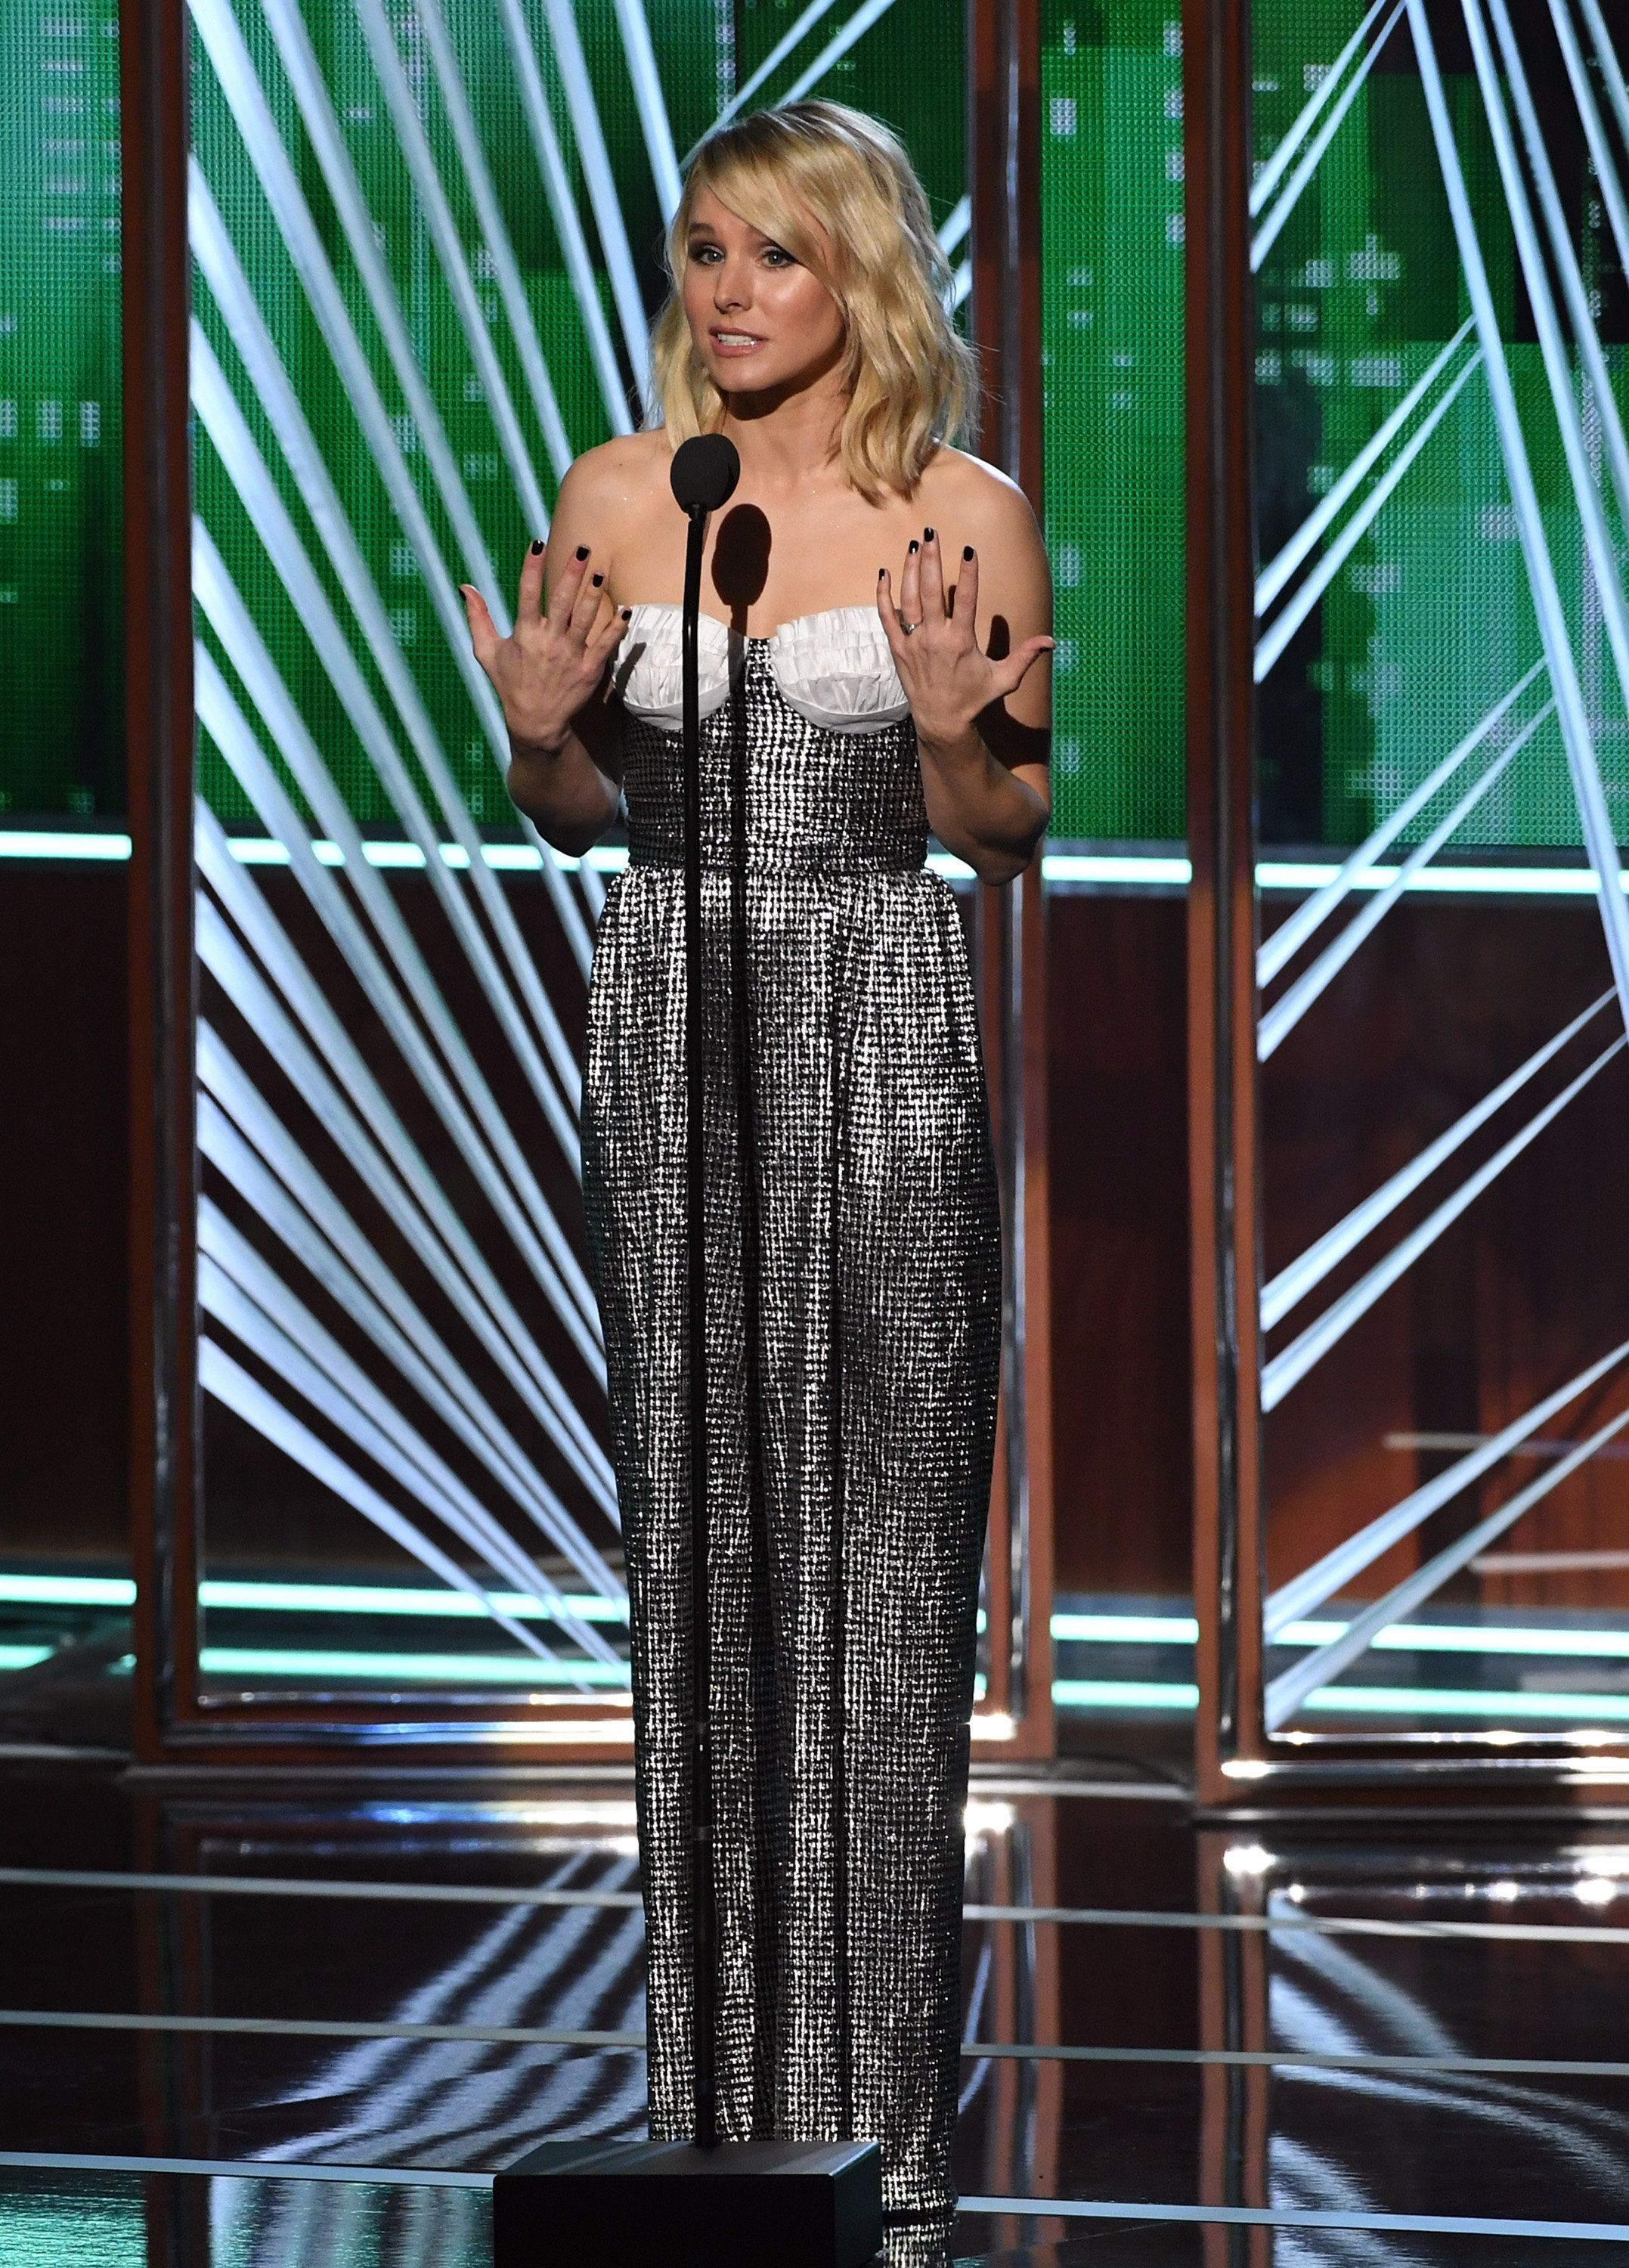 LOS ANGELES, CA - JANUARY 18:  Actress Kristen Bell speaks onstage during the People's Choice Awards 2017 at Microsoft Theater on January 18, 2017 in Los Angeles, California.  (Photo by Kevin Winter/Getty Images)